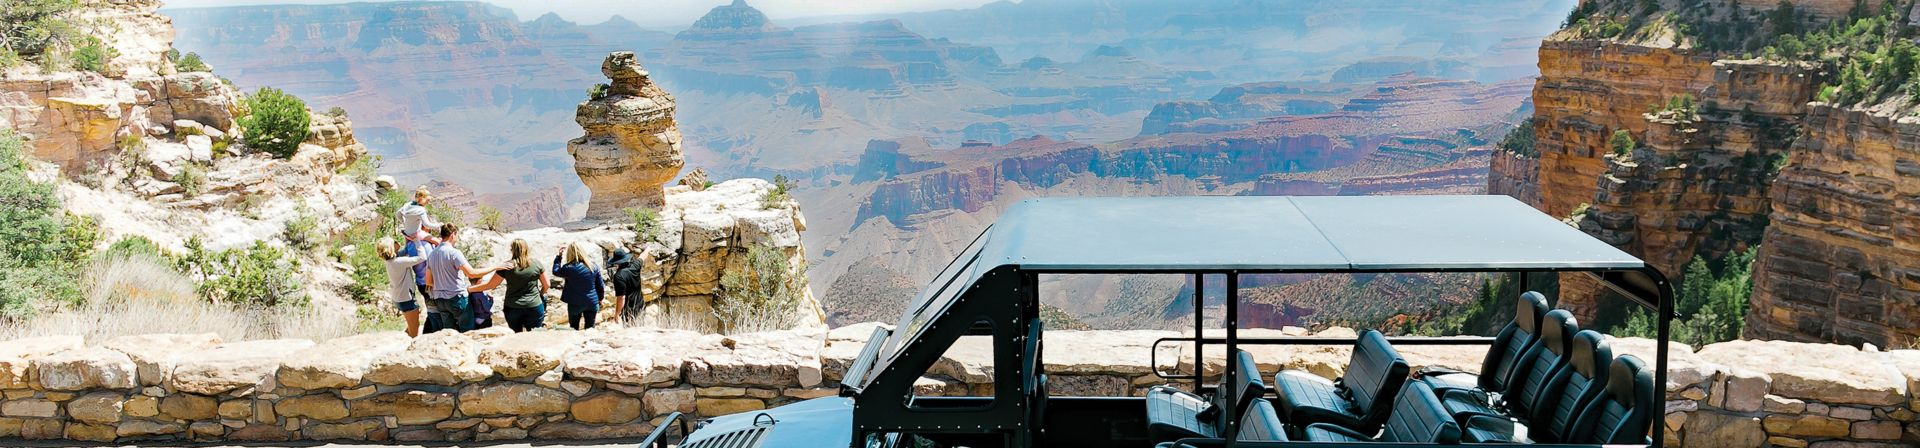 Guests overlooking the Grand Canyon at one of the stops on The Signature Tour